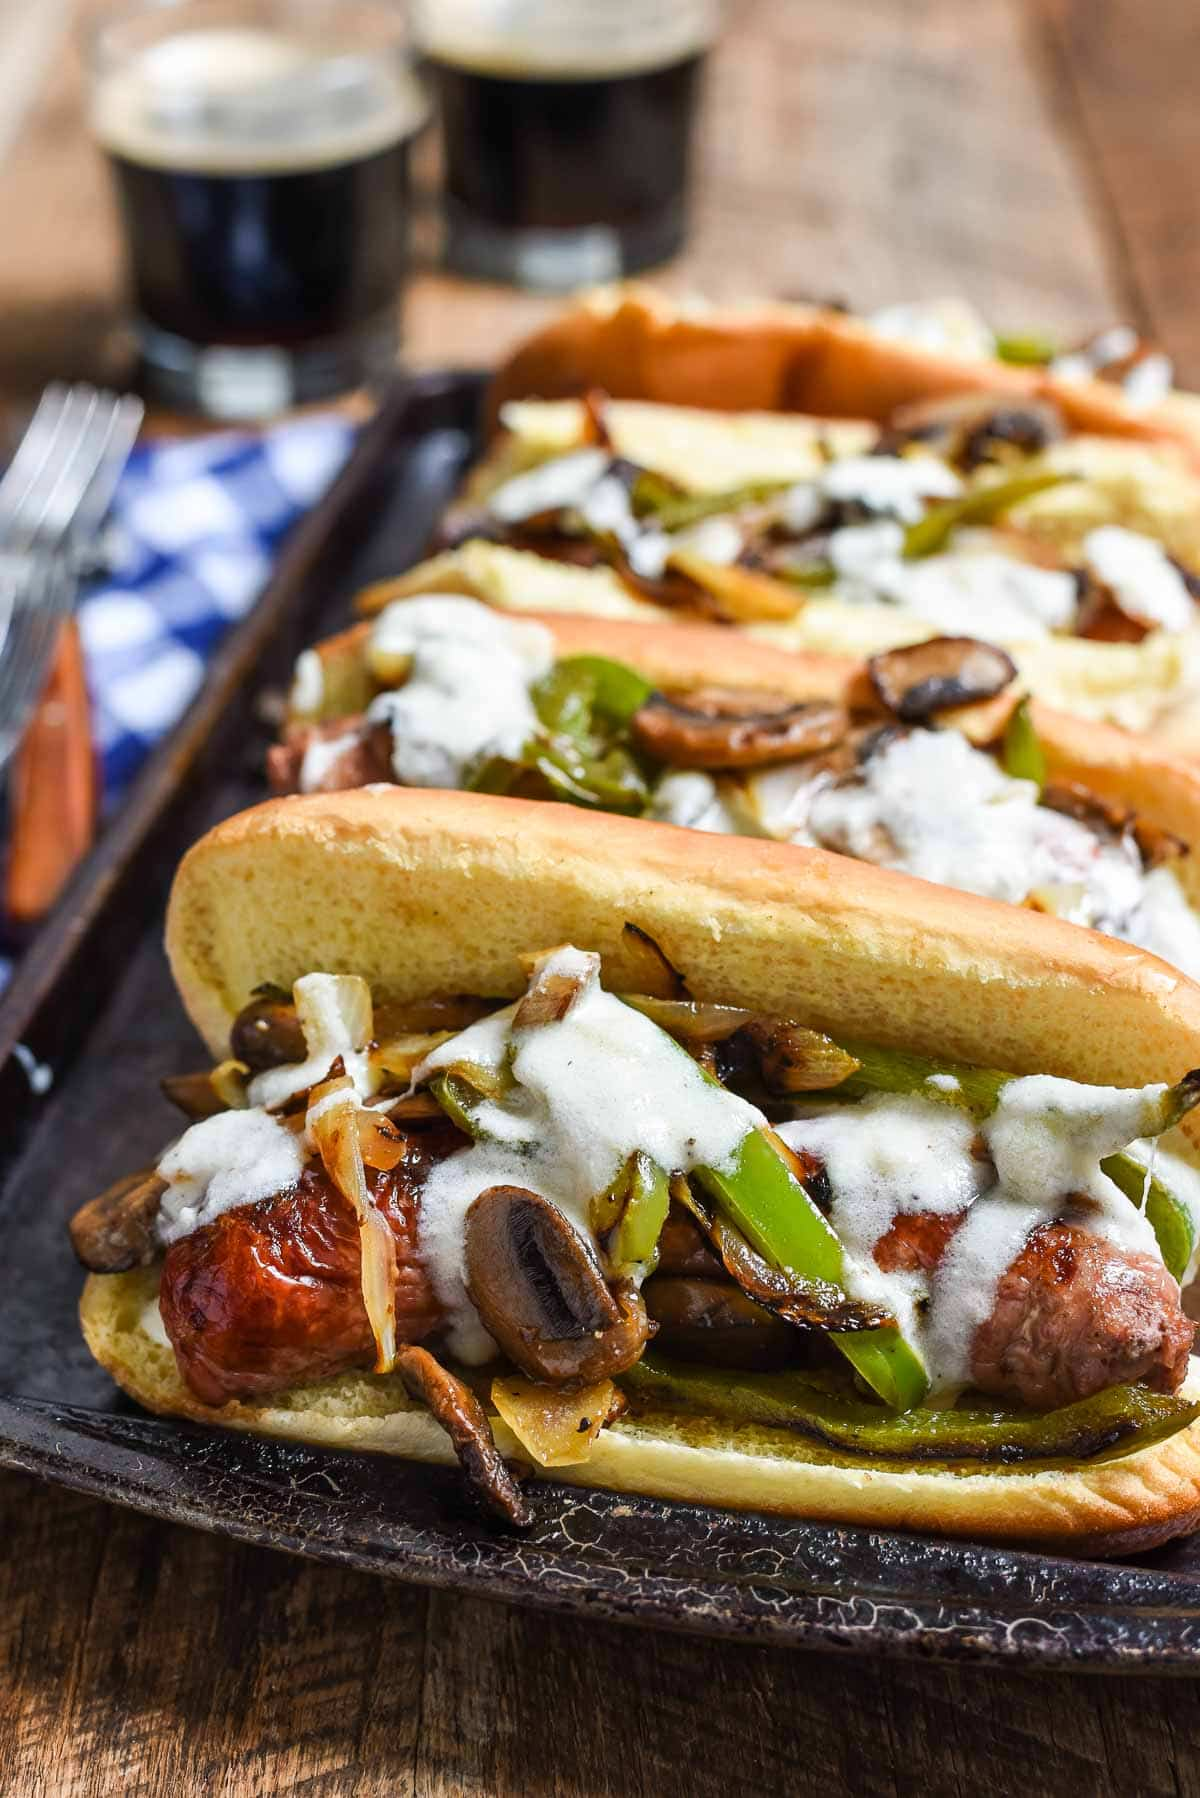 Philly Cheese Brats are a quick 30 minute meal perfect for grilling! Juicy brats with bell peppers, onions, mushrooms, and a creamy cheese sauce!